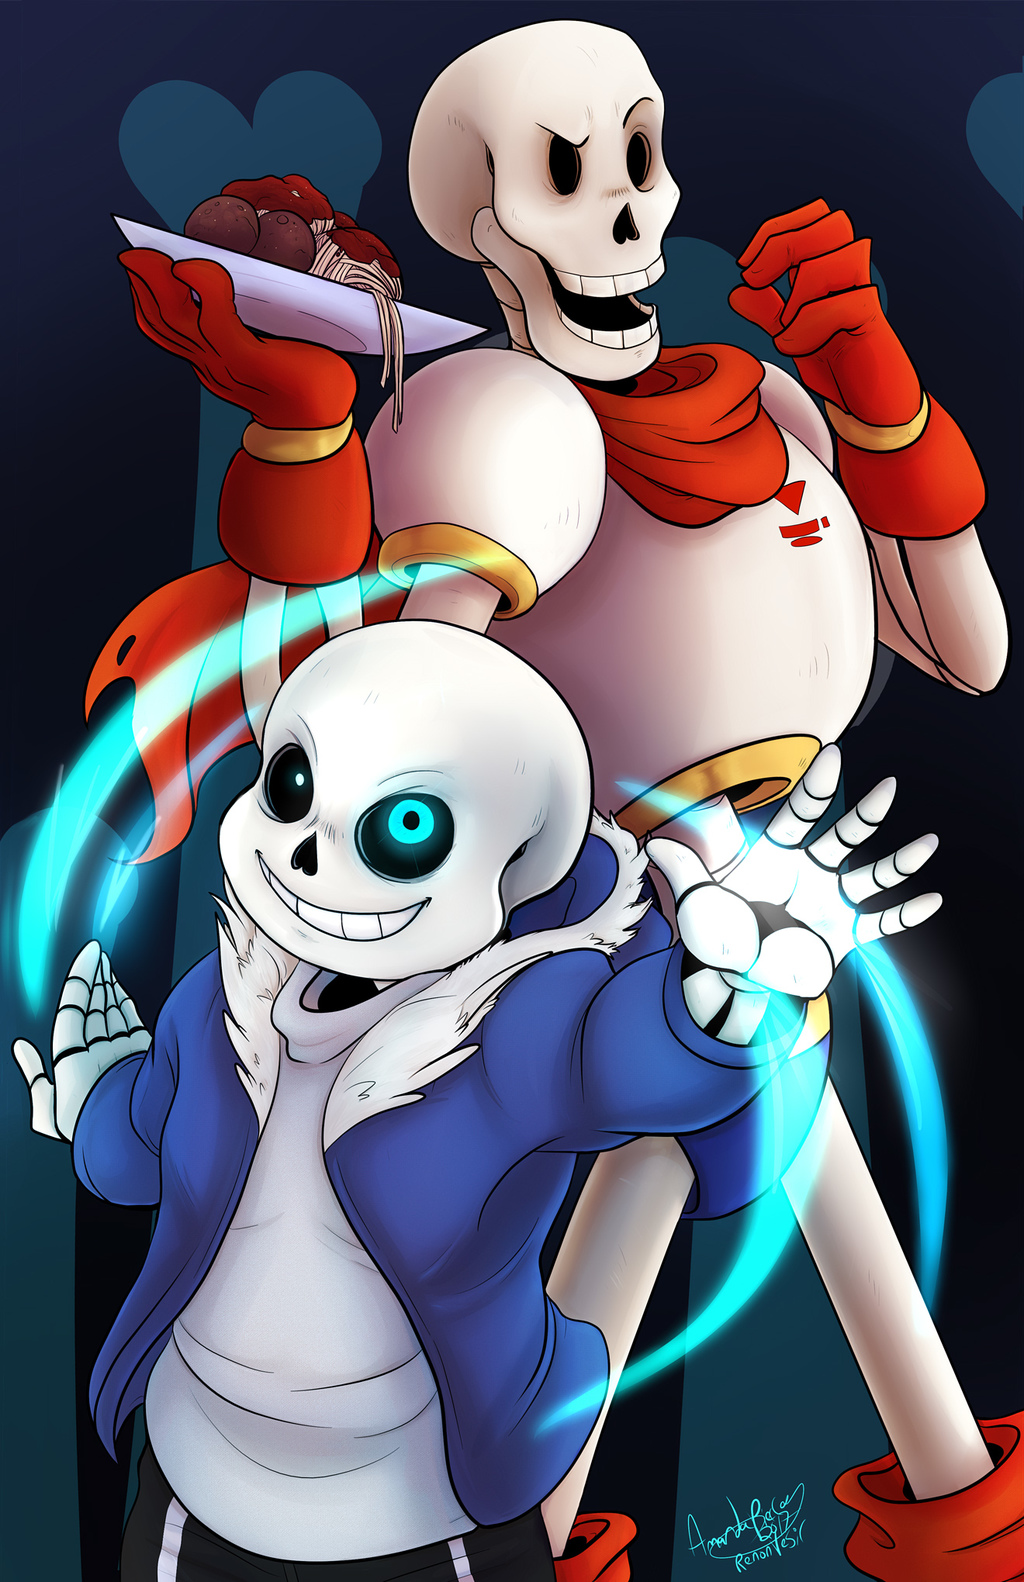 Most recent image: Sans and Papyrus - finished- with video